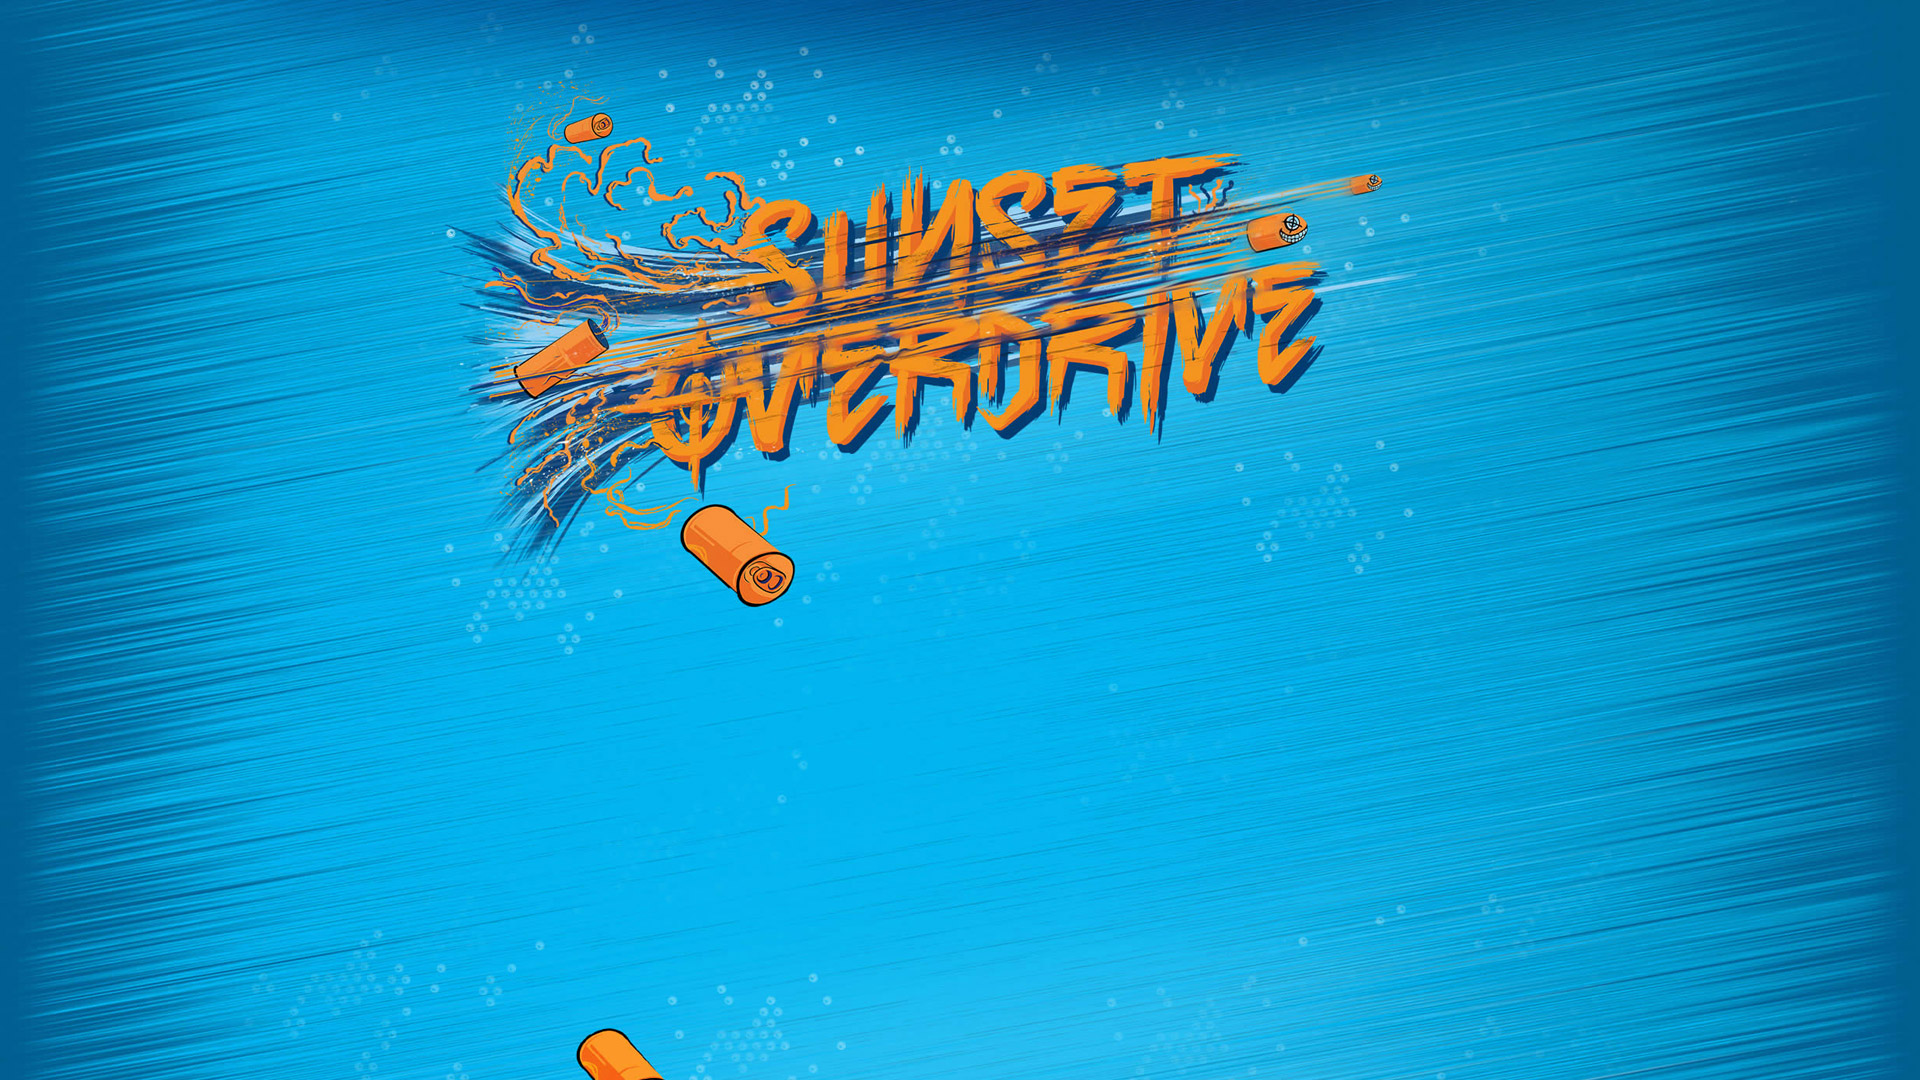 Sunset Overdrive Wallpaper 1